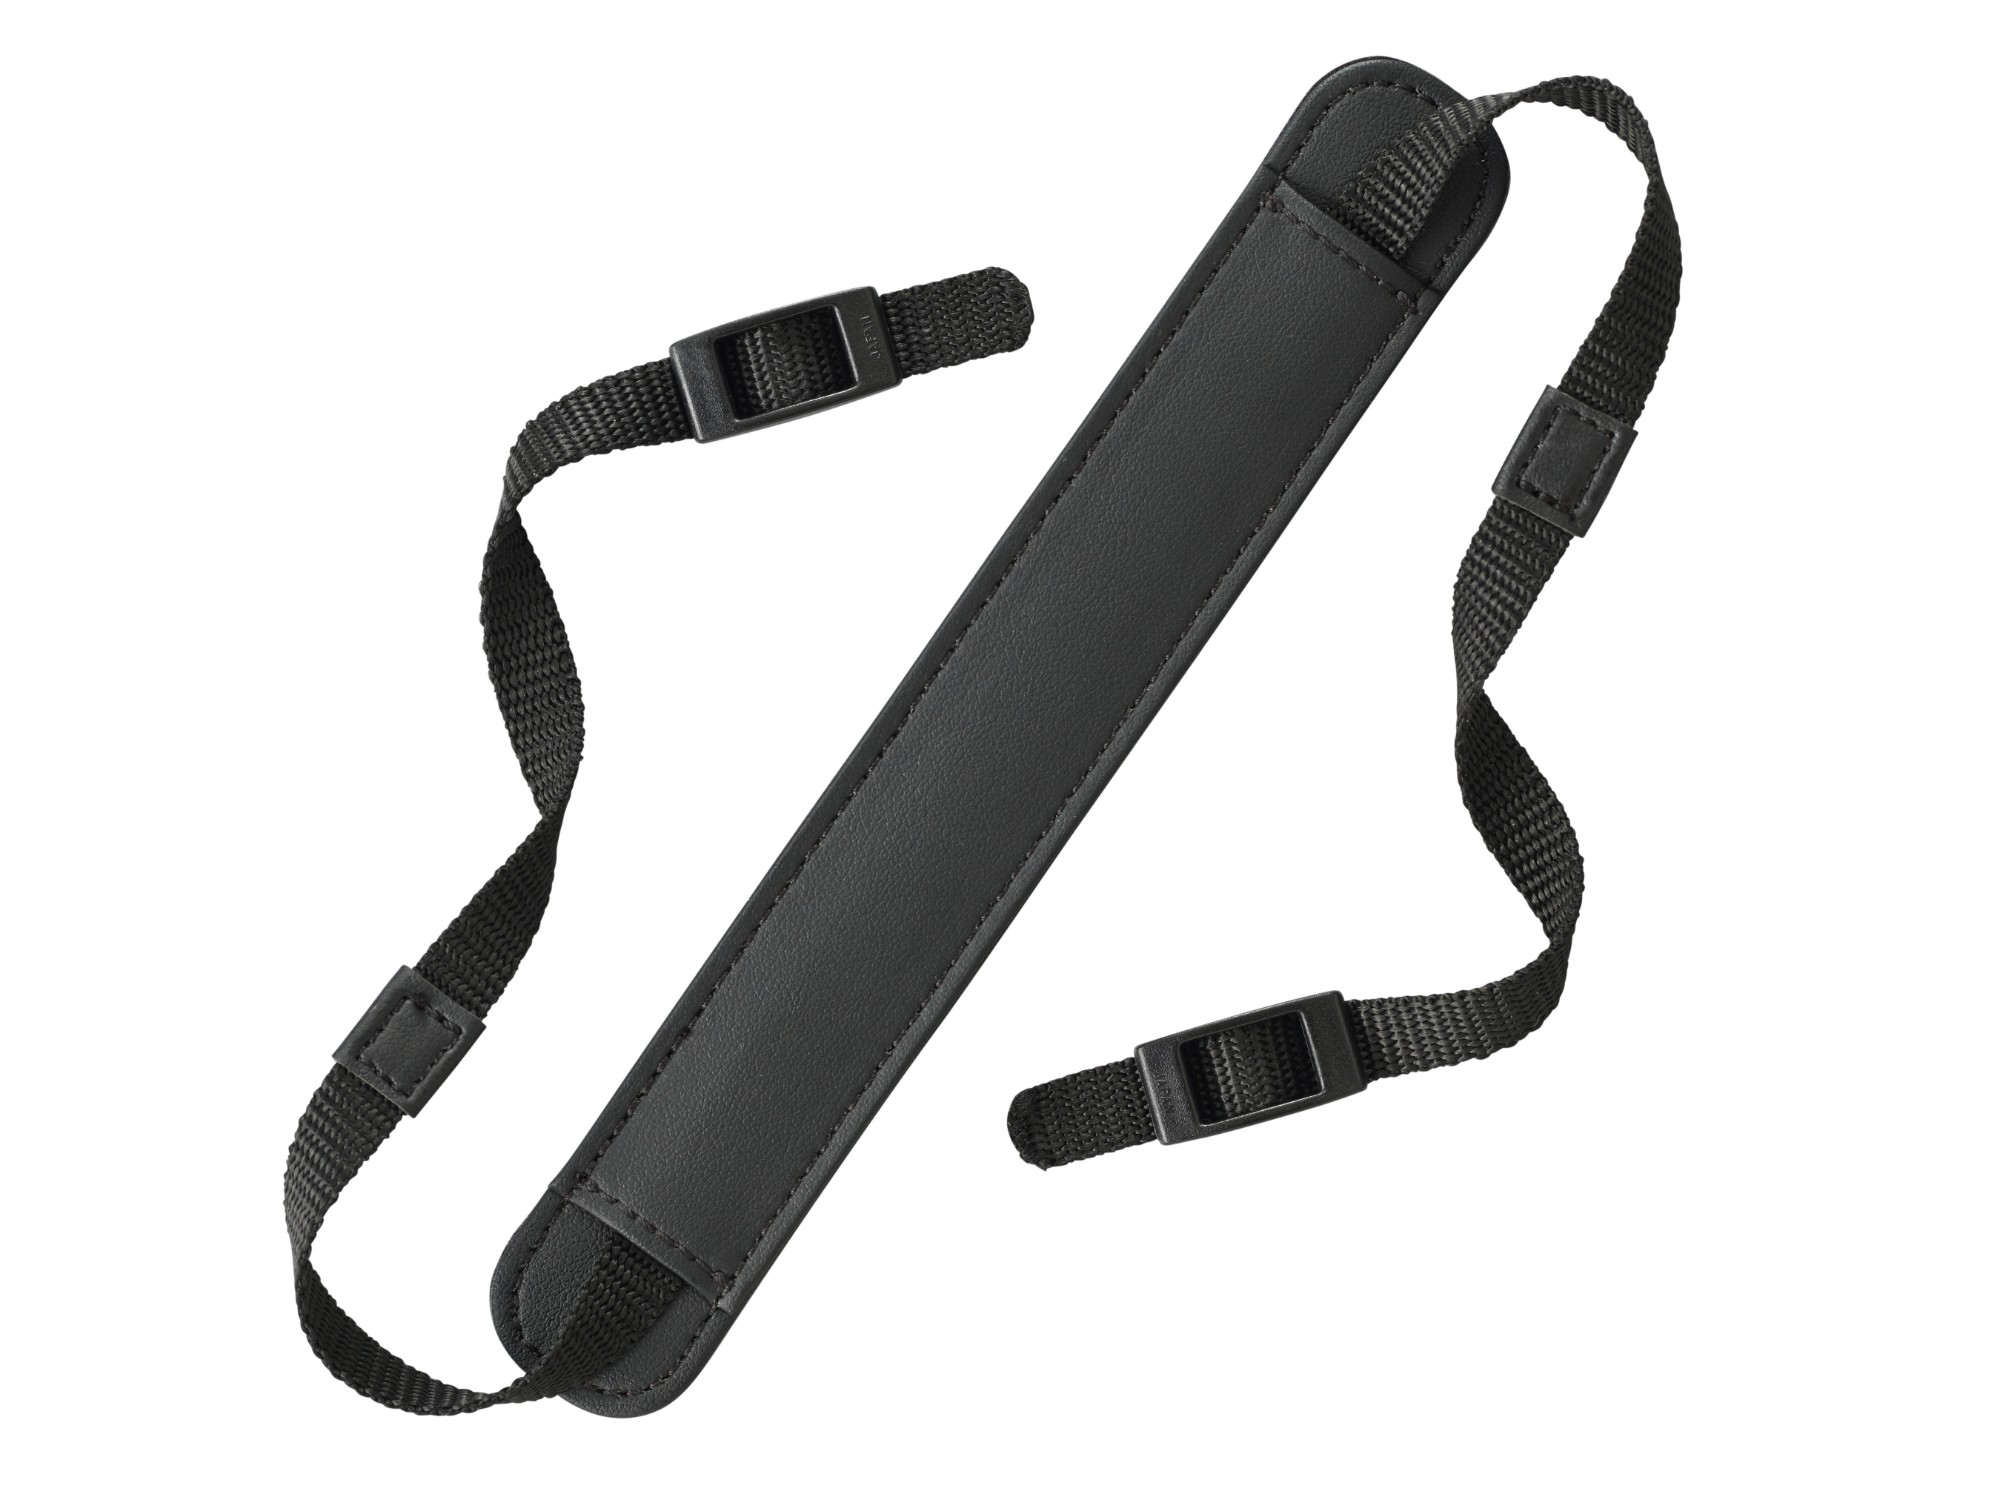 Panasonic Handstrap for CF-33 Tablet Notebook Black strap